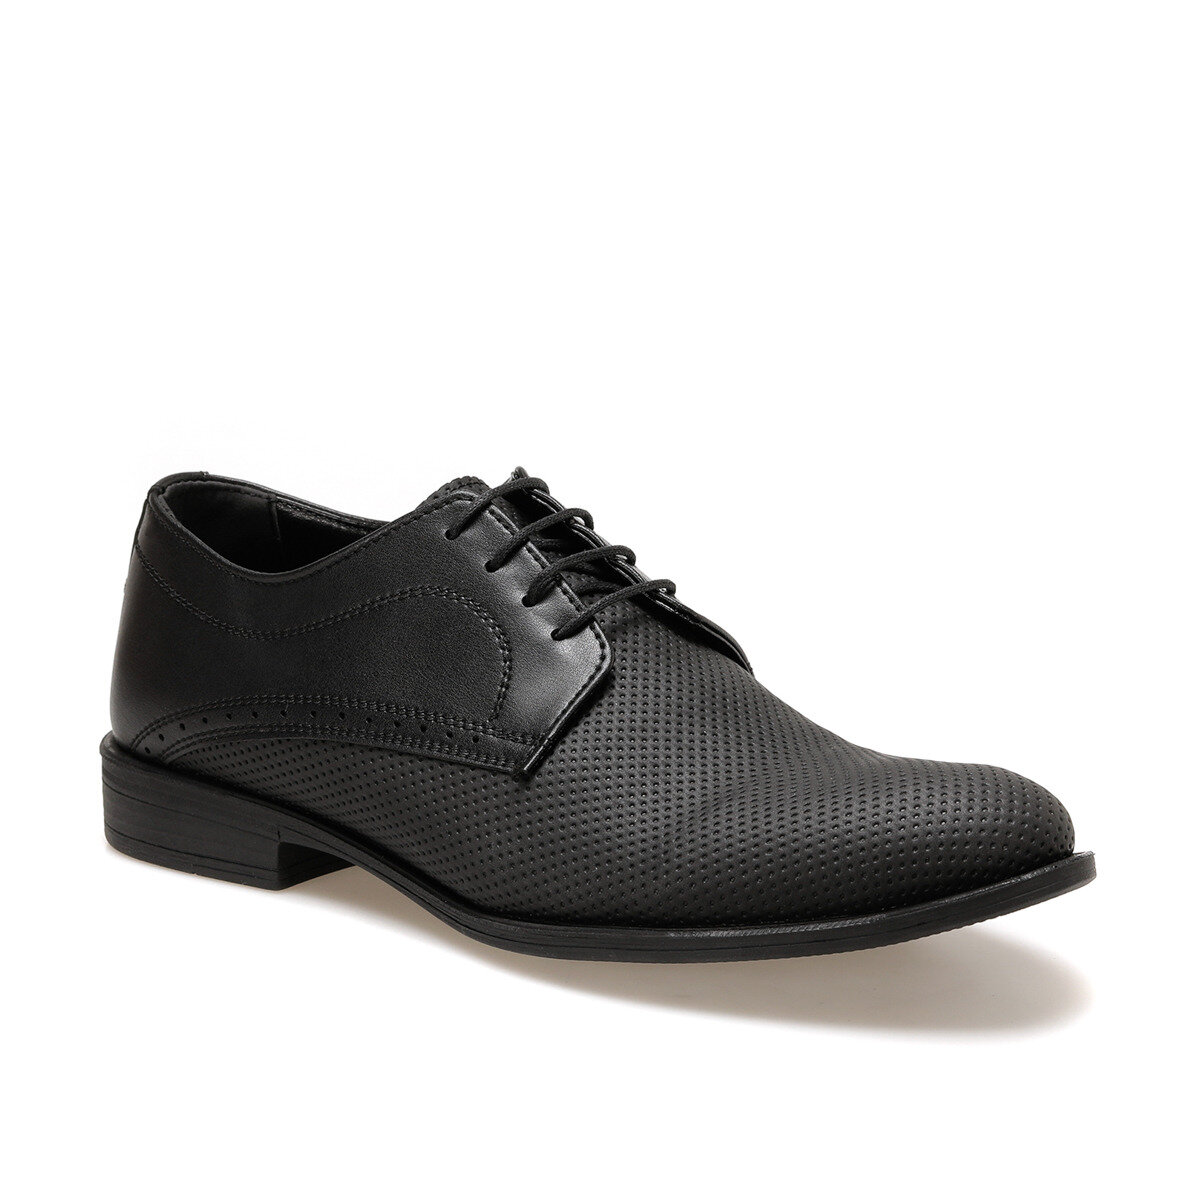 FLO The DT-04 Black Men Dress Shoes DOWN TOWN